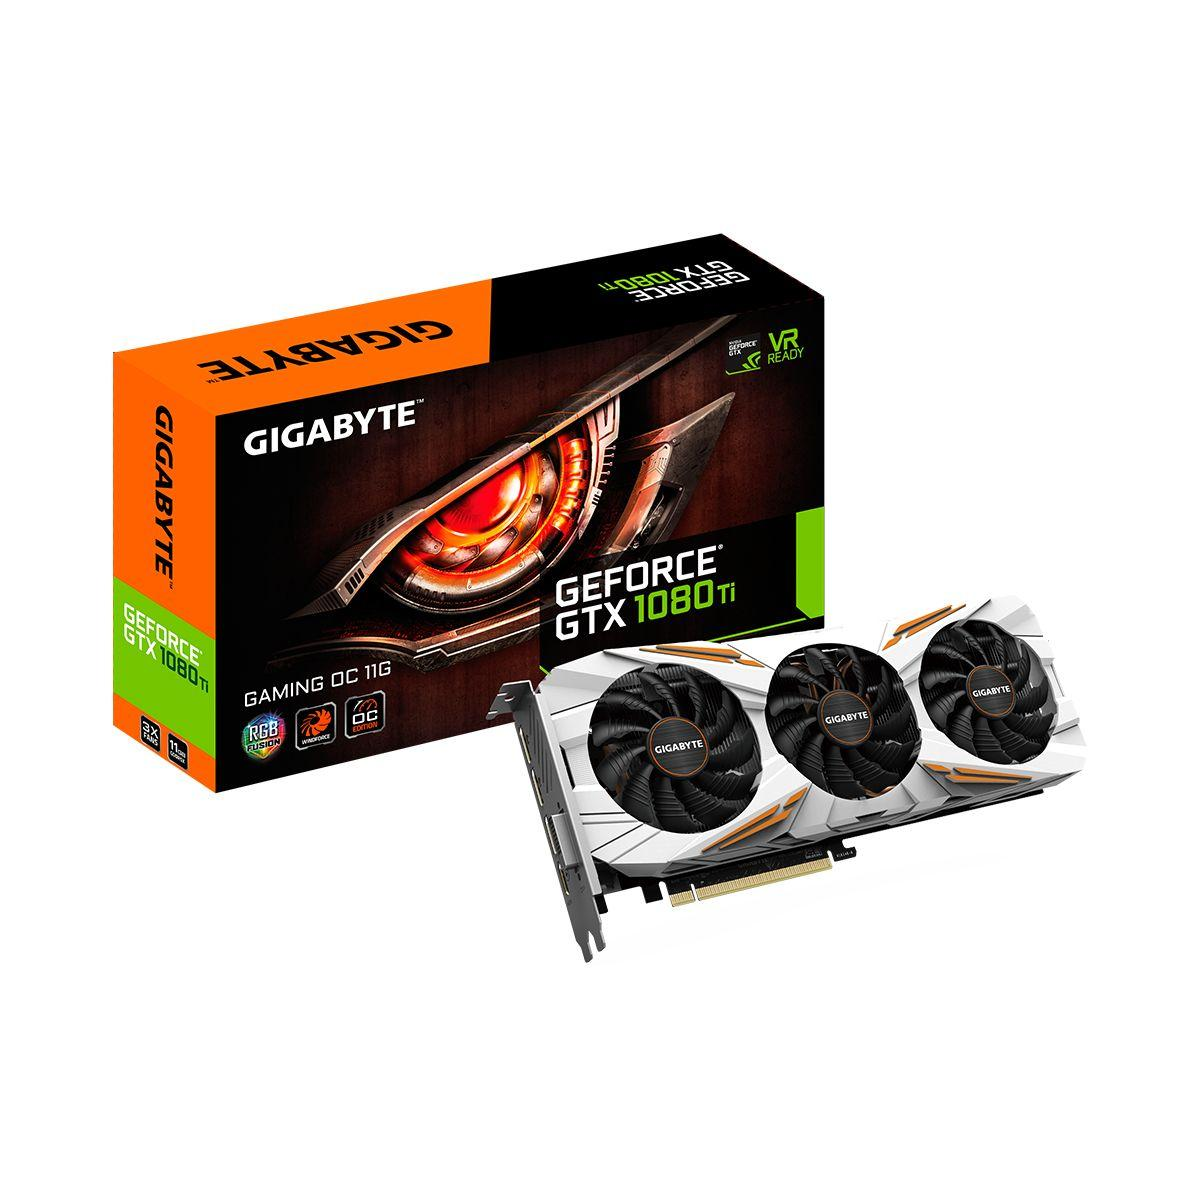 Carte graphique nvidia gigabyte geforce - gtx 1080 ti gaming oc 11g - 2% de remise imm�diate avec le code : fete2 (photo)